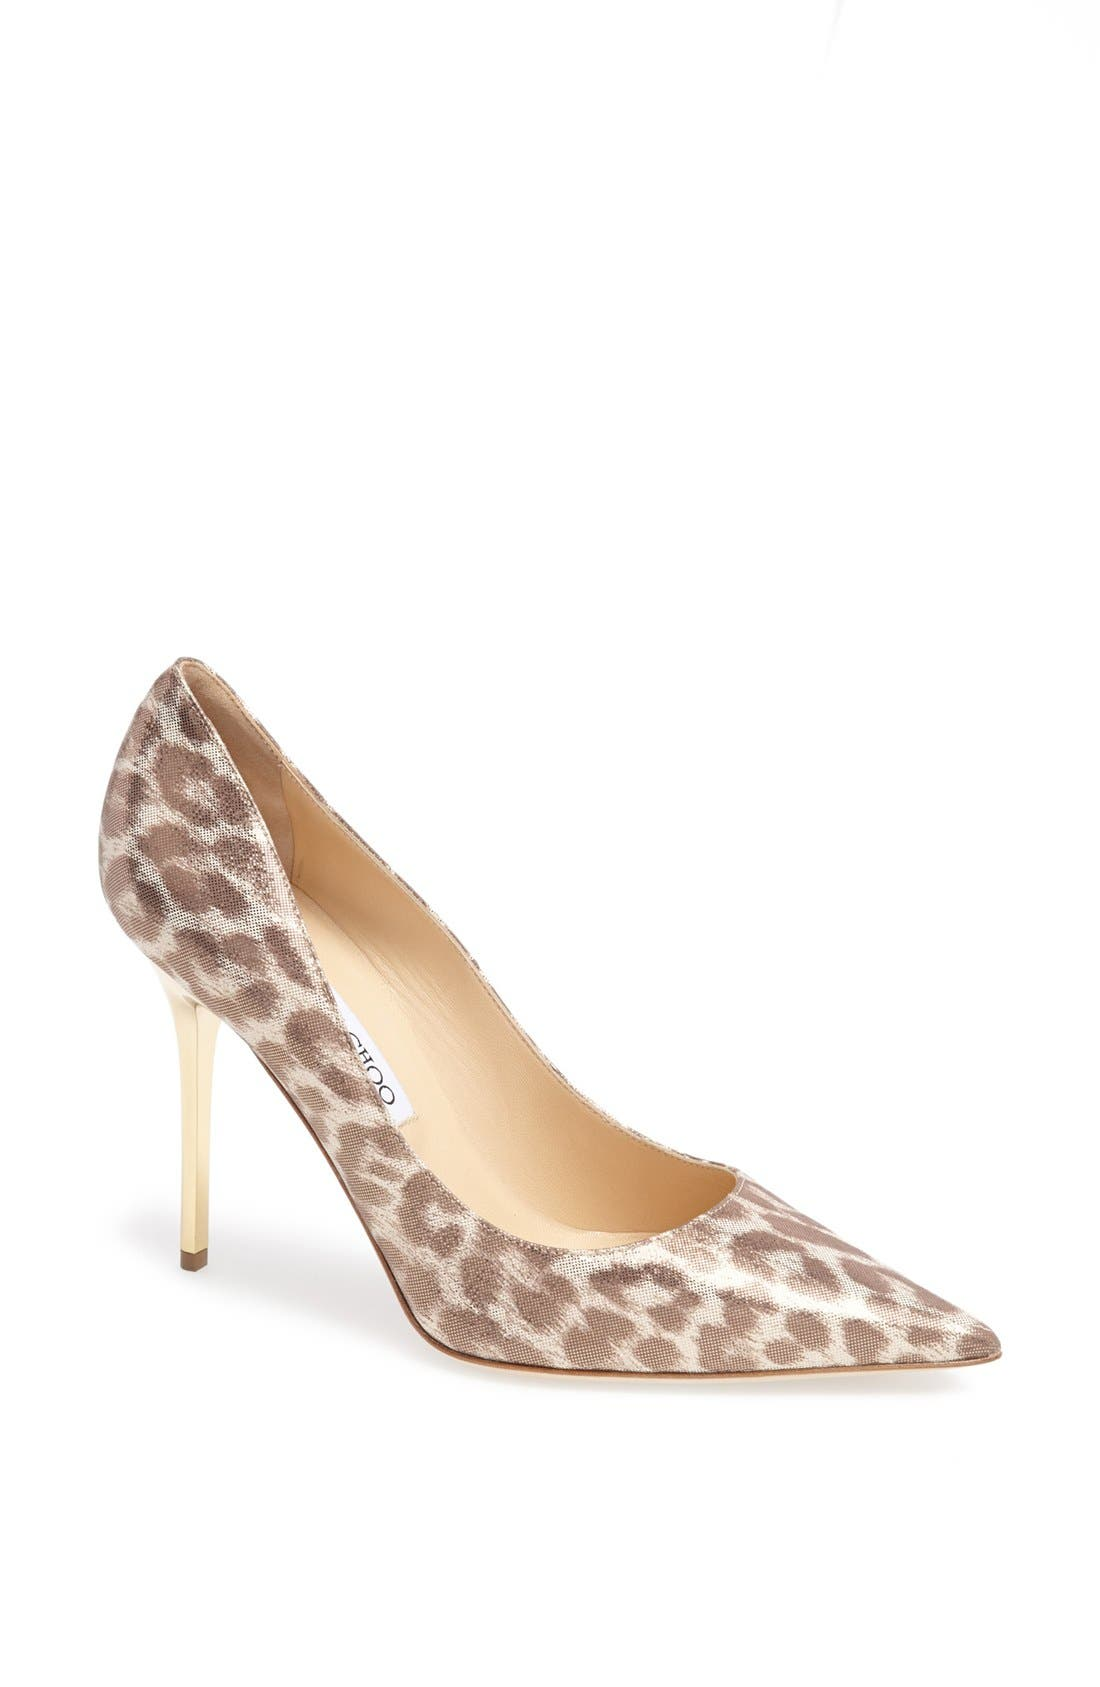 Alternate Image 1 Selected - Jimmy Choo 'Abel' Pointy Toe Pump